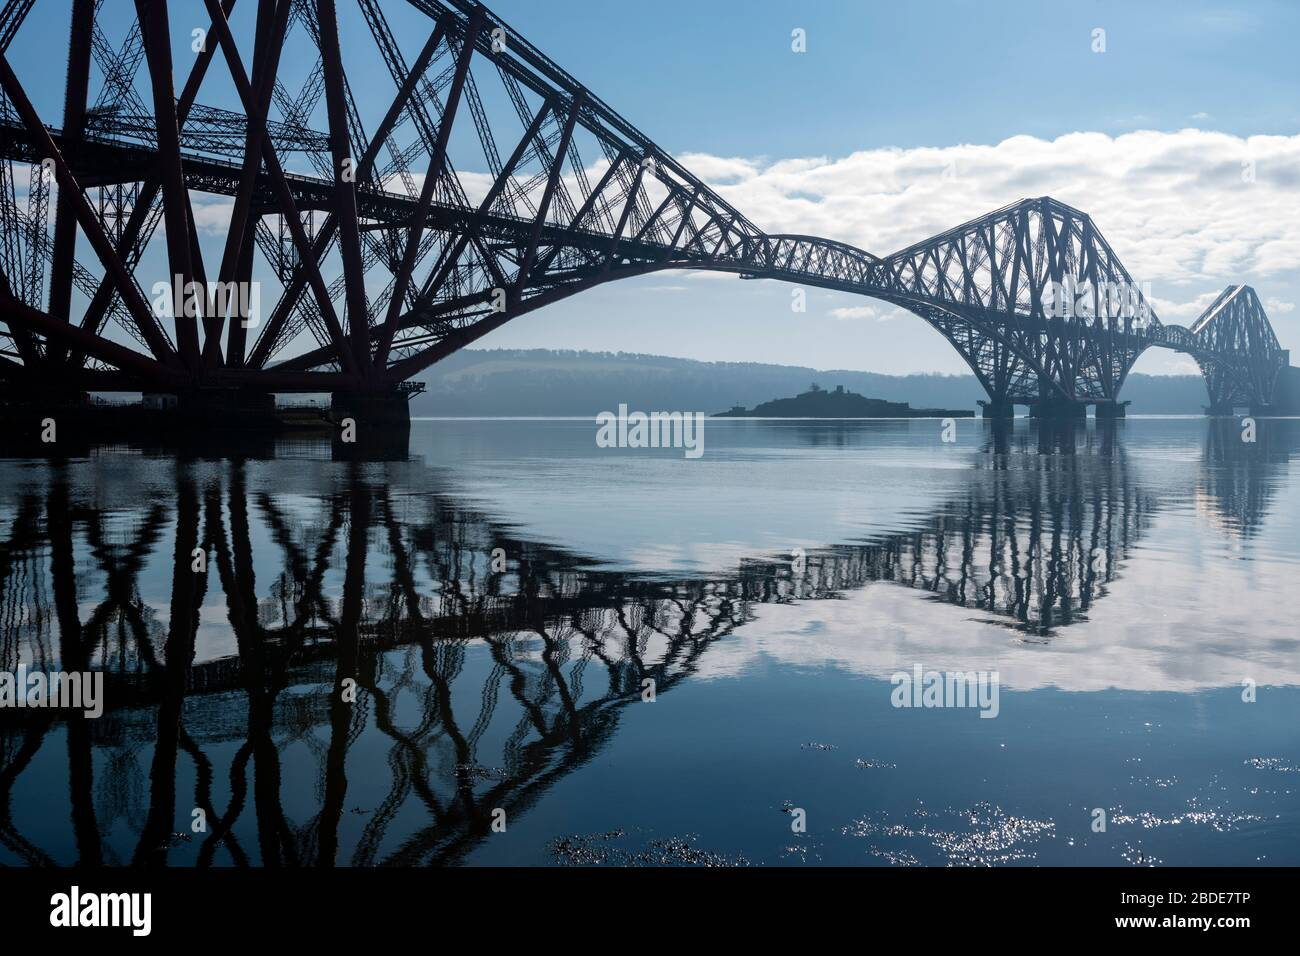 Forth Rail Bridge, with Inchgarvie island visible under span, viewed from the harbour on South Bay, North Queensferry in Fife, Scotland, UK Stock Photo